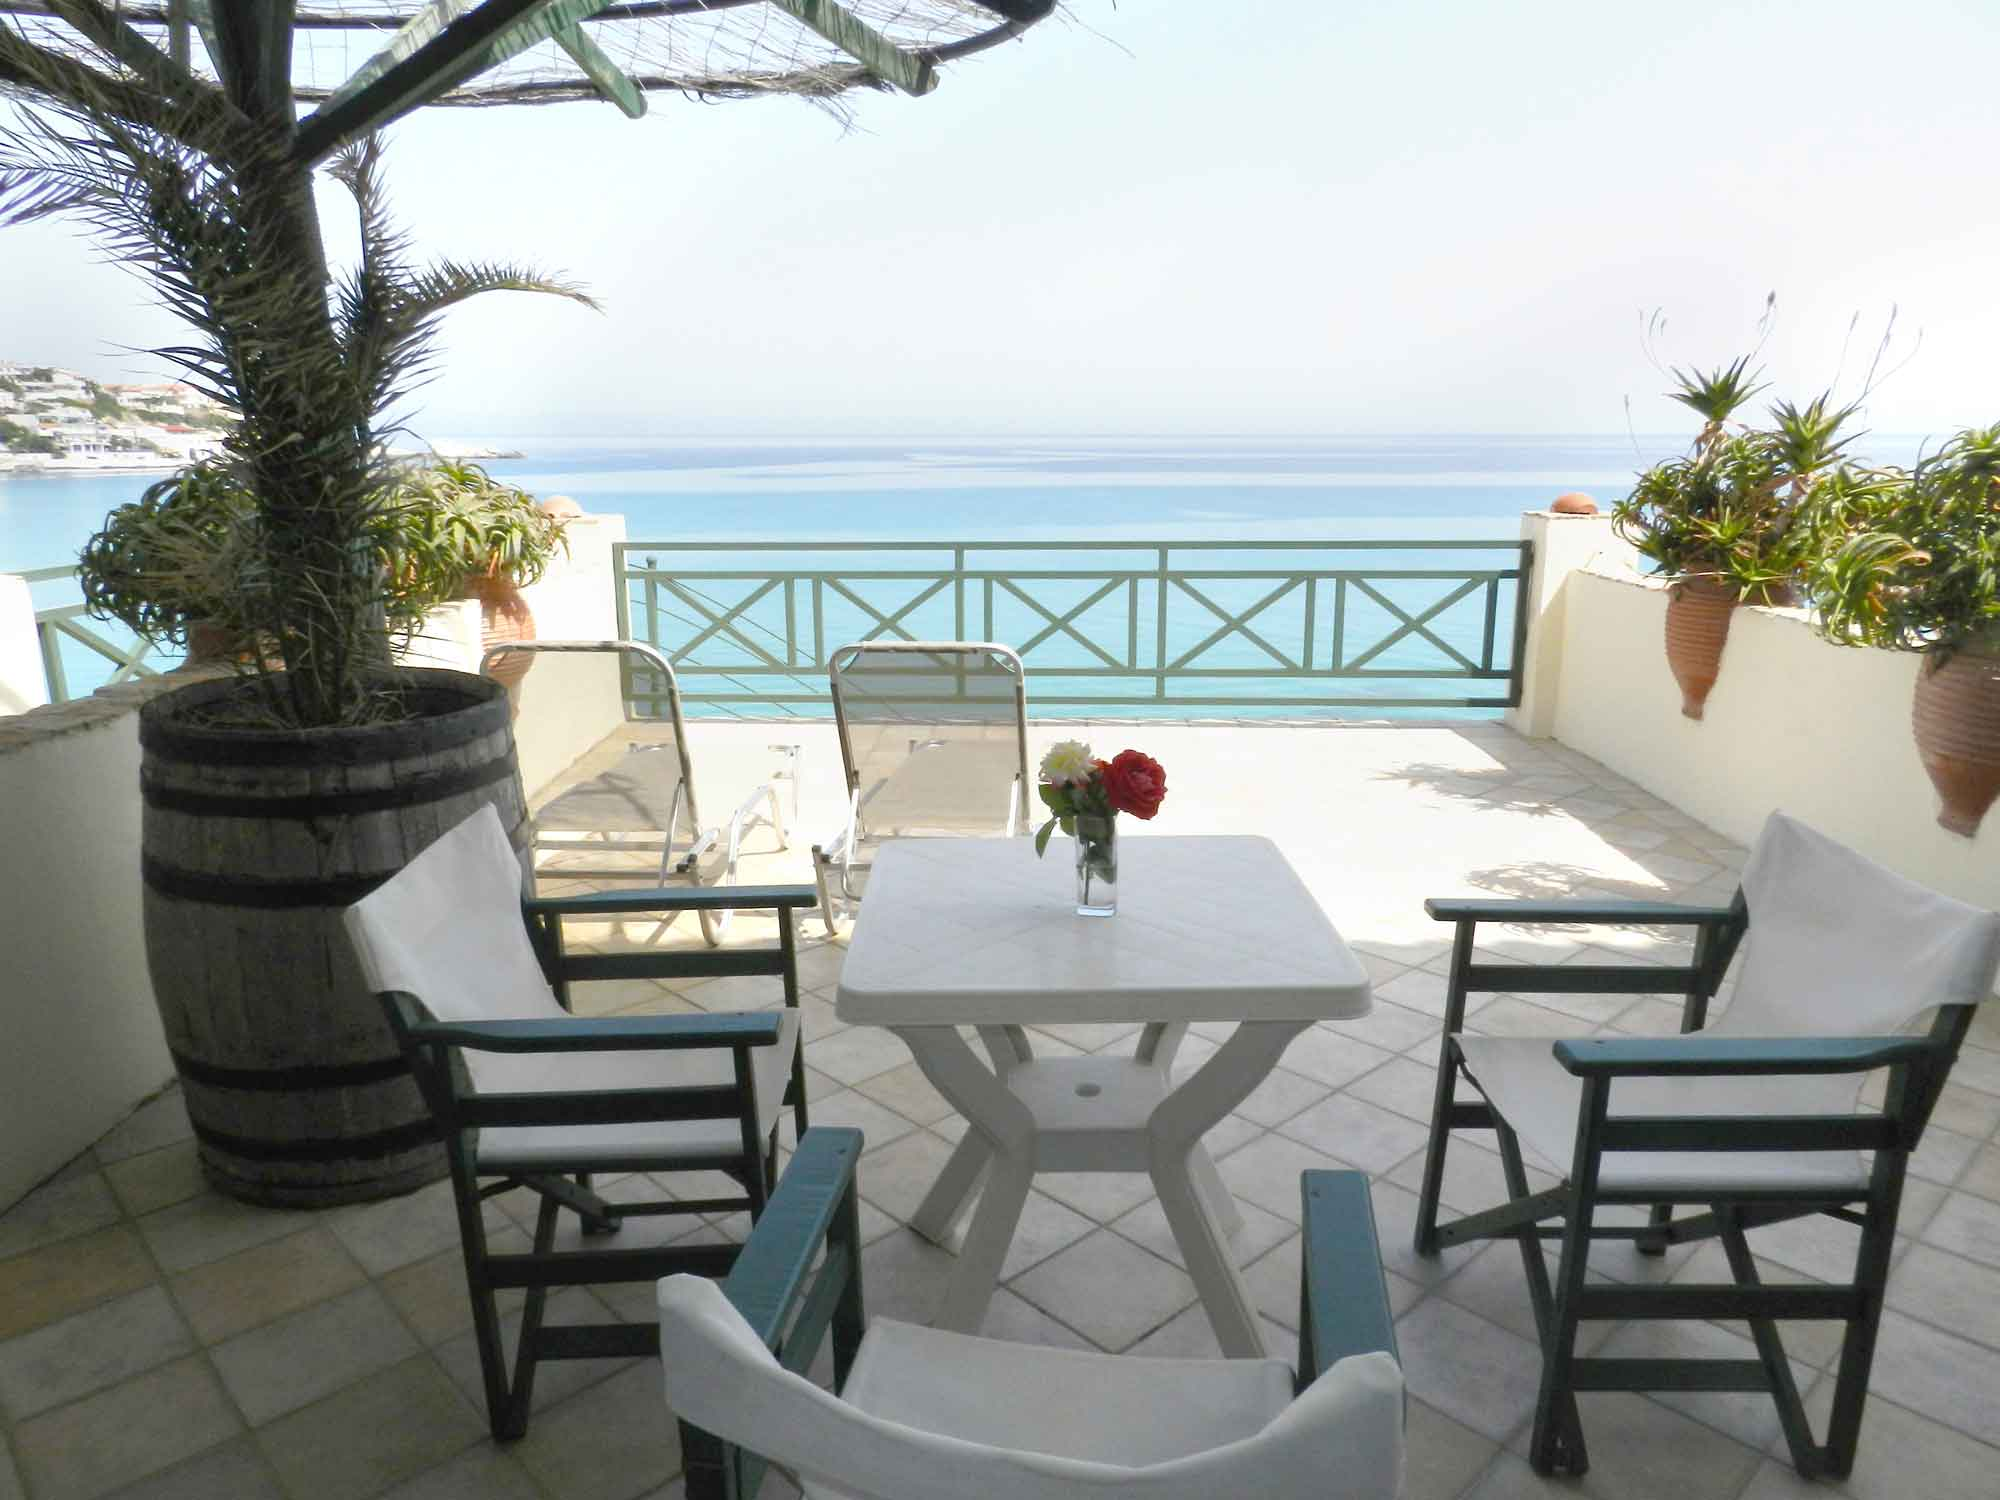 Studio's veranda with sea view